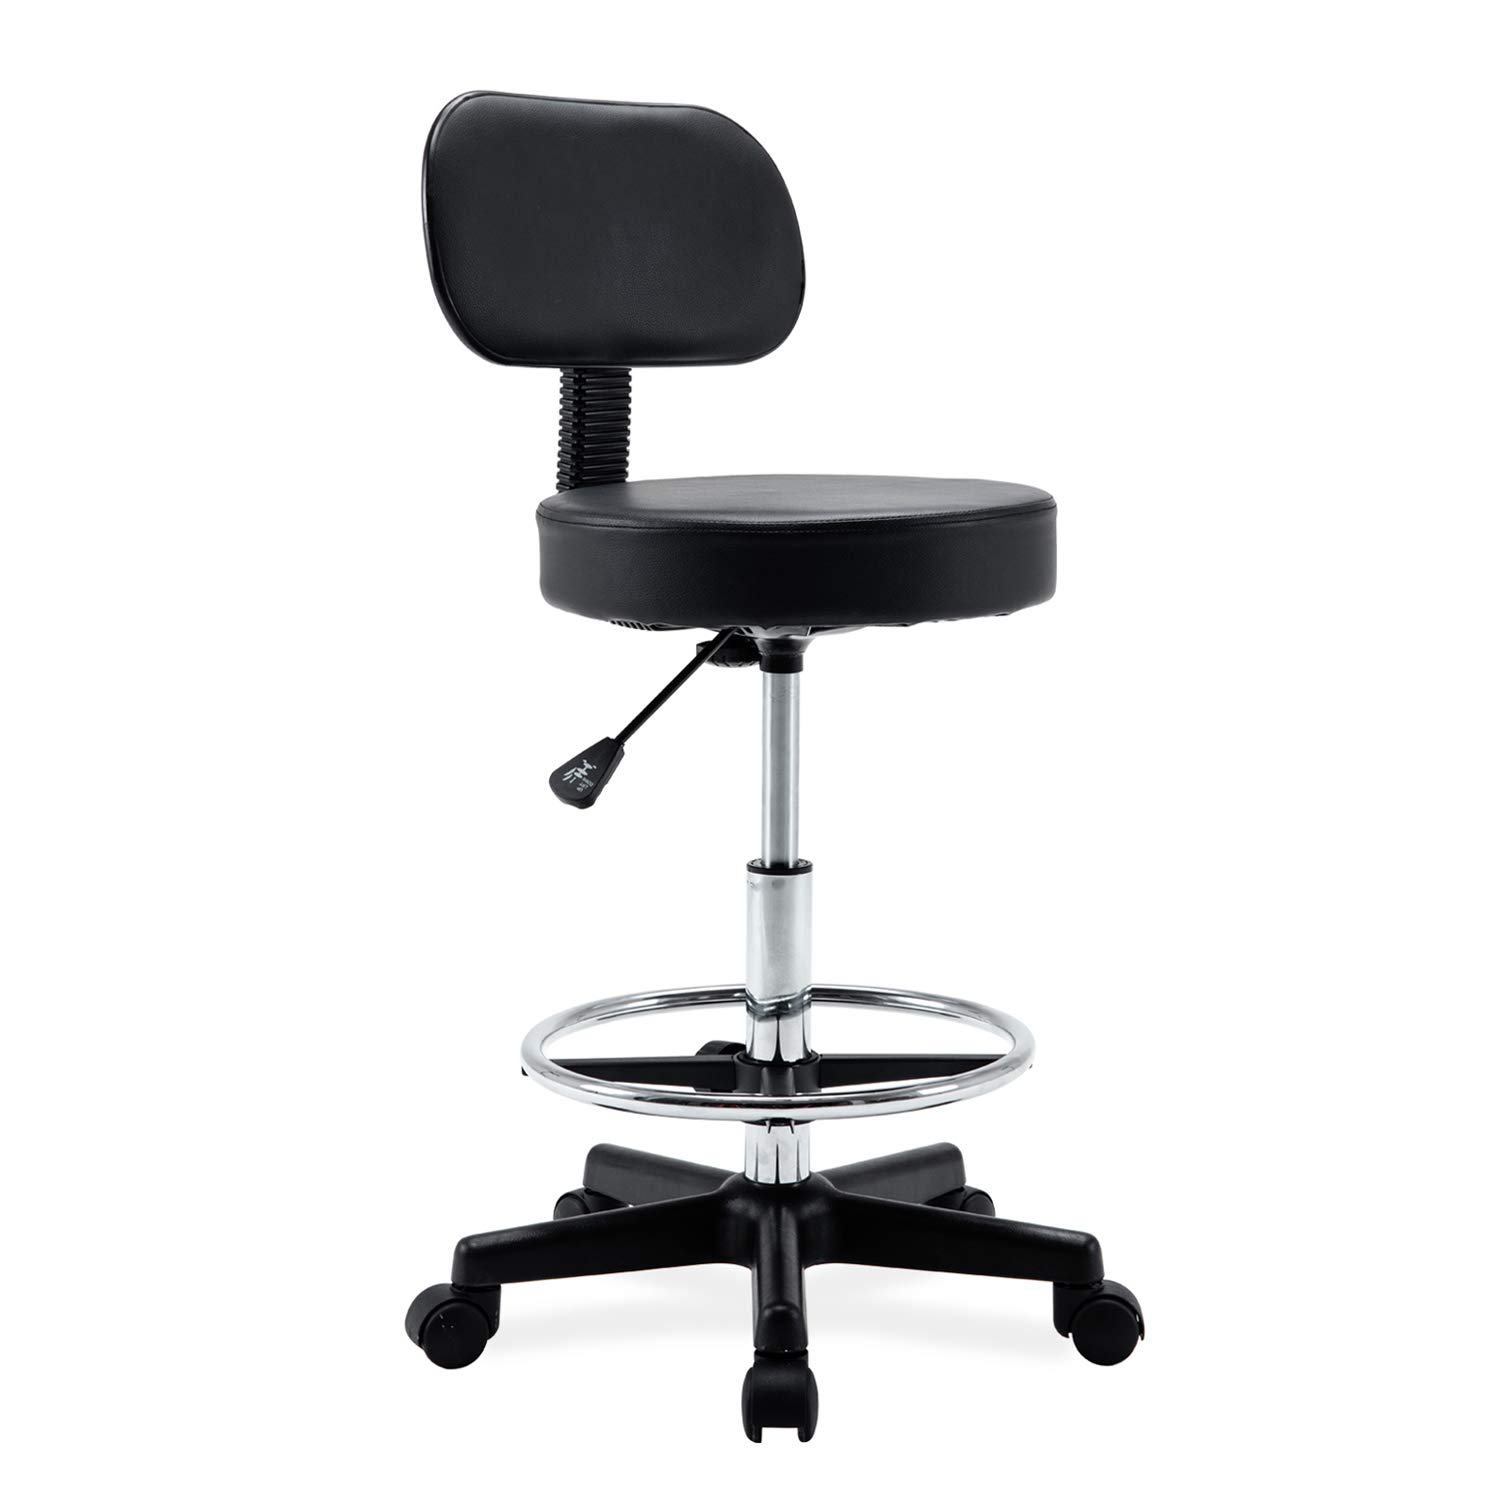 Fine Ergonomic Drafting Stool Adjustable Rolling Office Chair Work Stool With Back And Wheels For Home Office Workplace Studio Guitar Practice Seat Machost Co Dining Chair Design Ideas Machostcouk